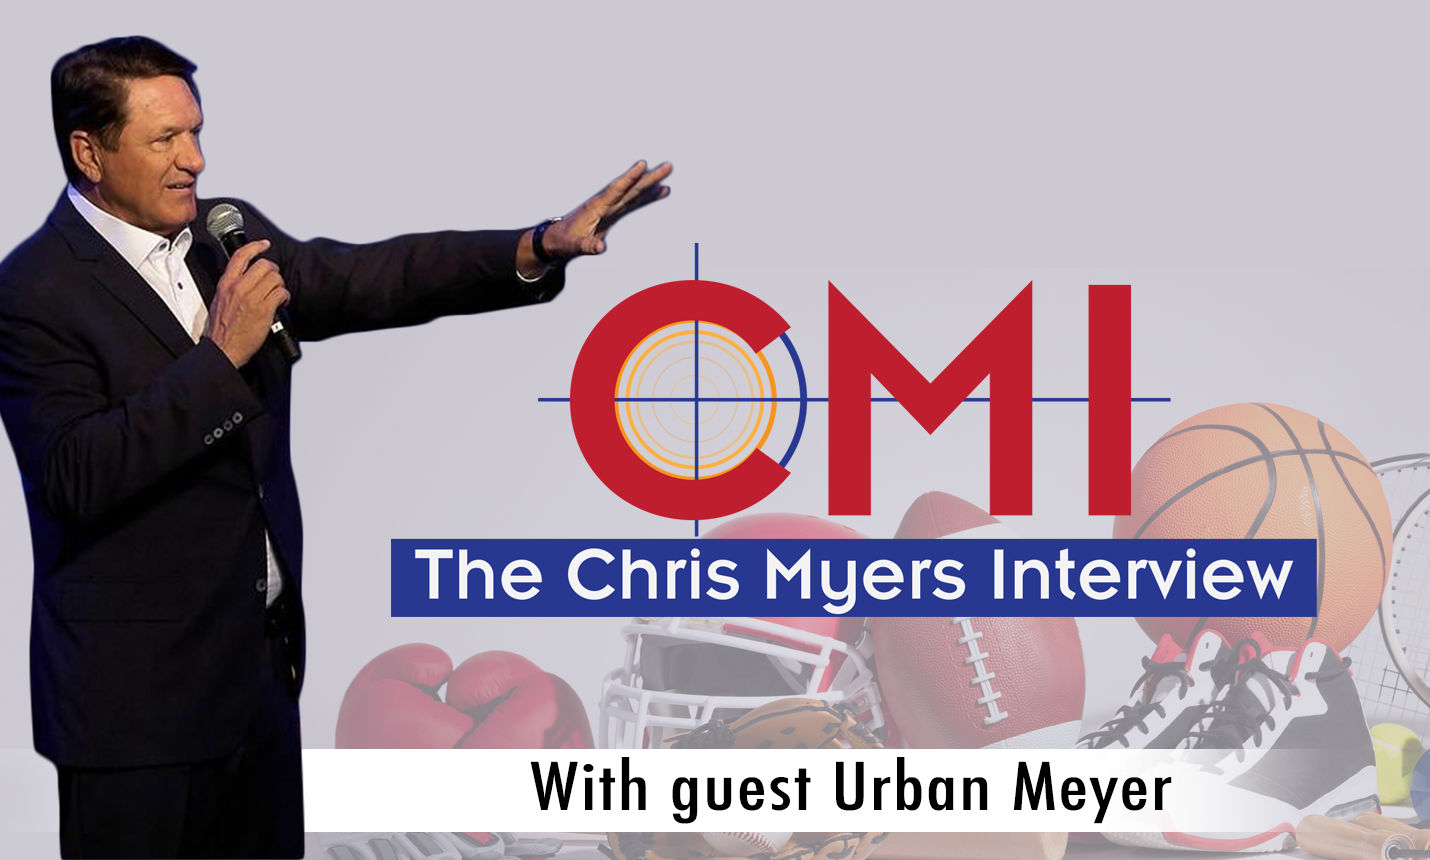 The Chris Myers Interview